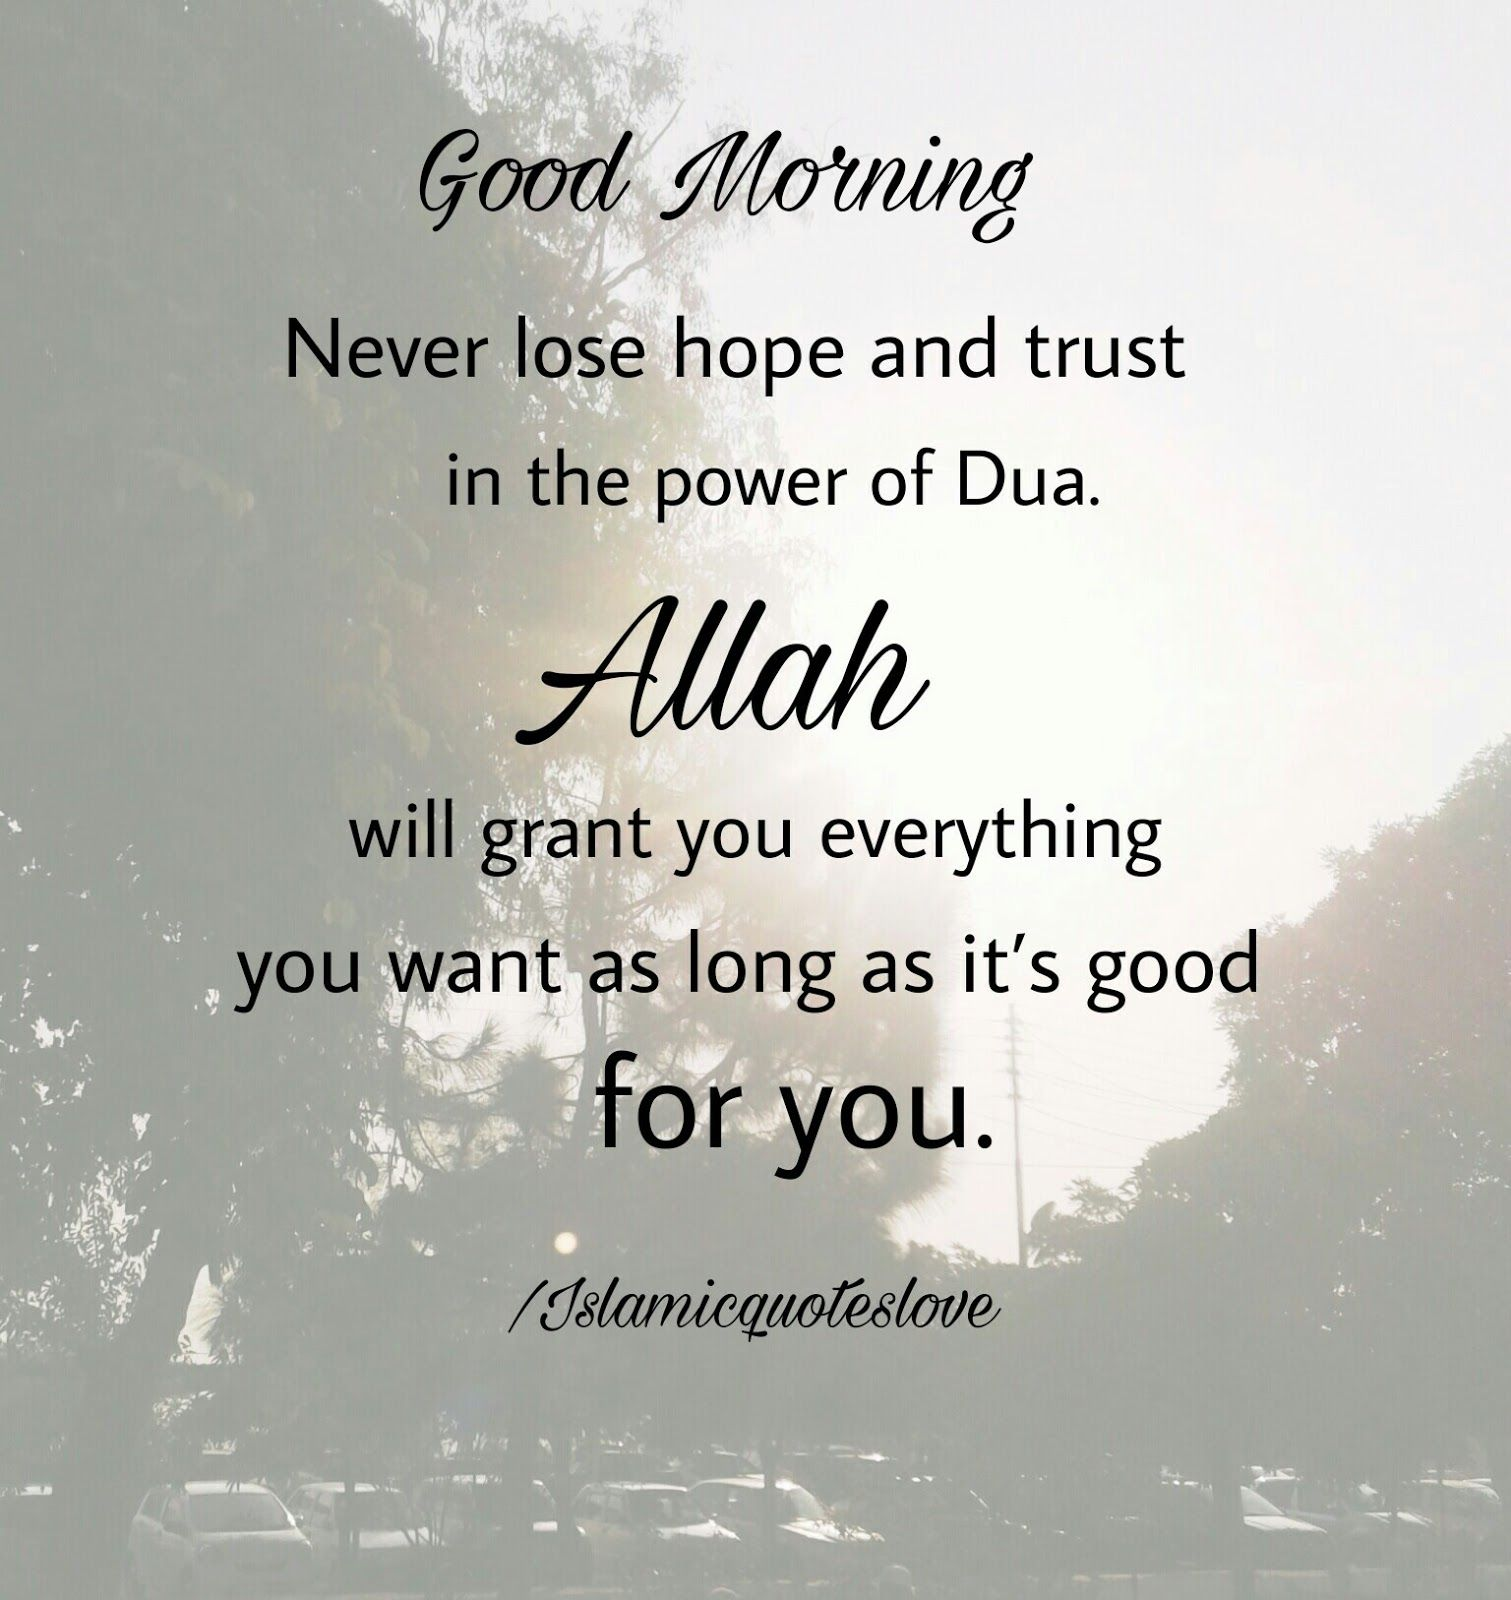 Image For Islamic Good Morning Images Download Recipes To Cook